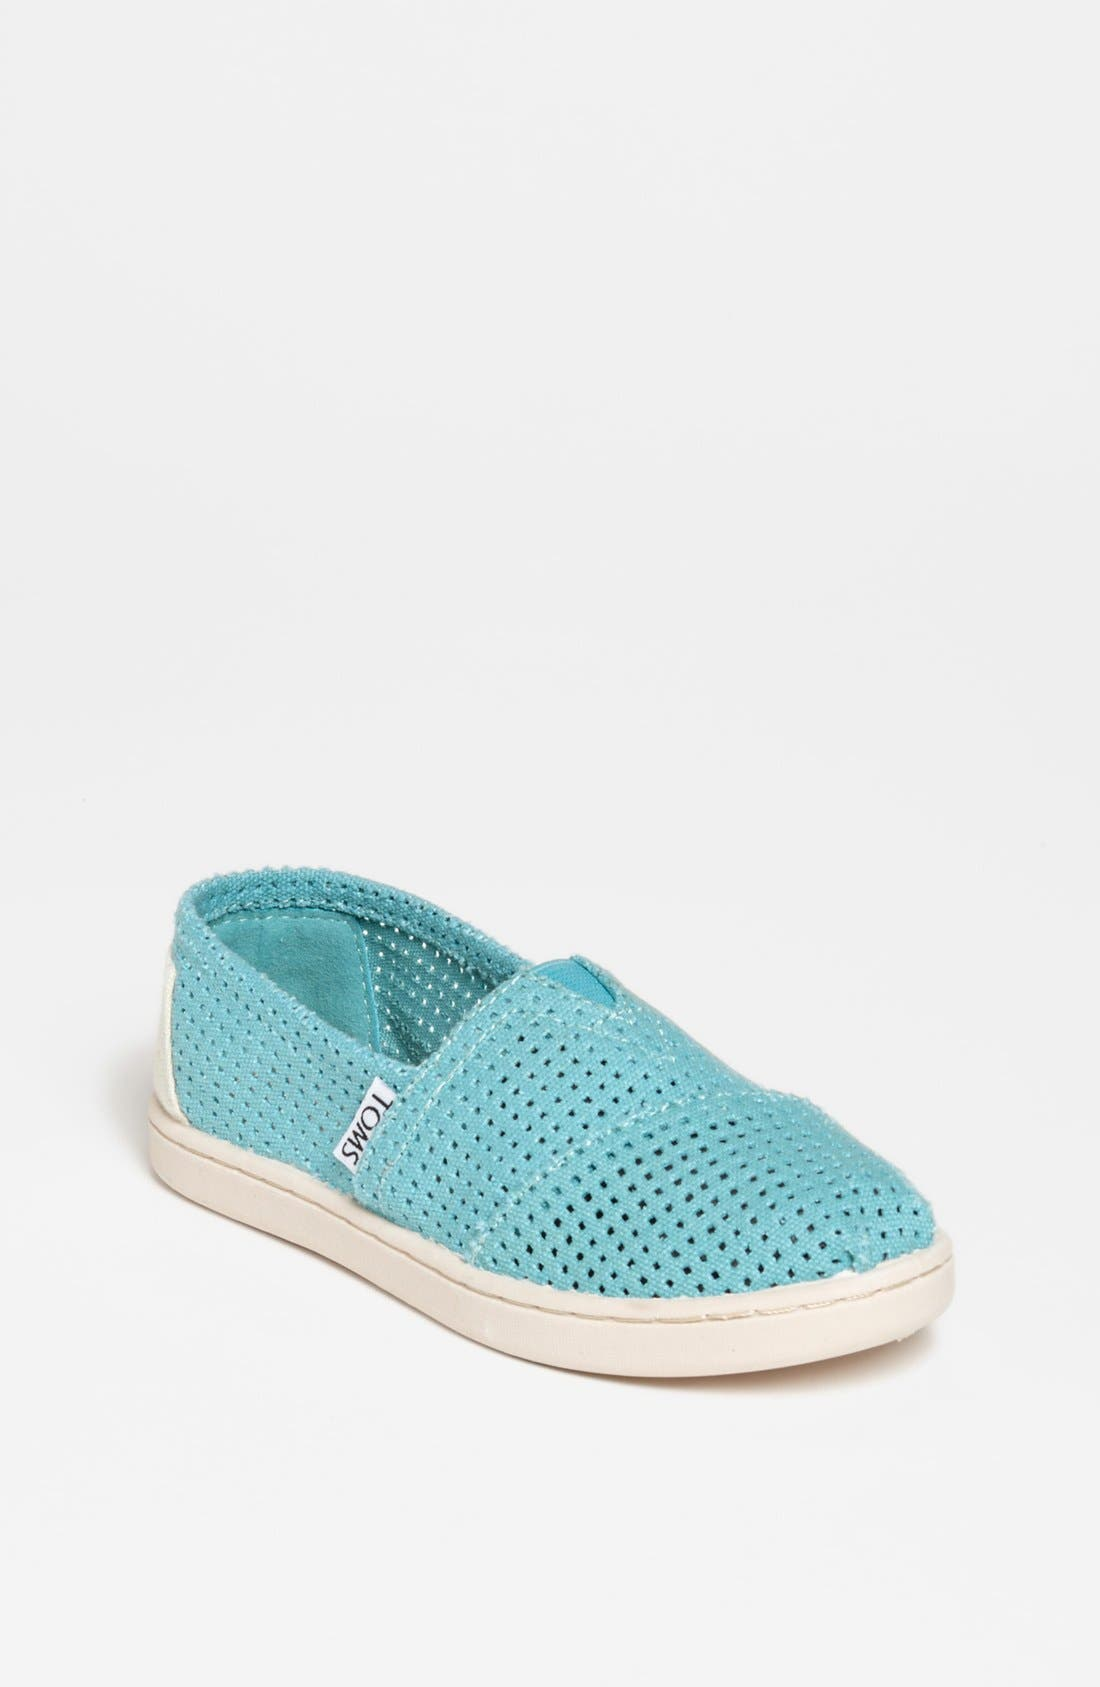 Alternate Image 1 Selected - TOMS 'Classic - Youth' Perforated Slip-On (Toddler, Little Kid & Big Kid)